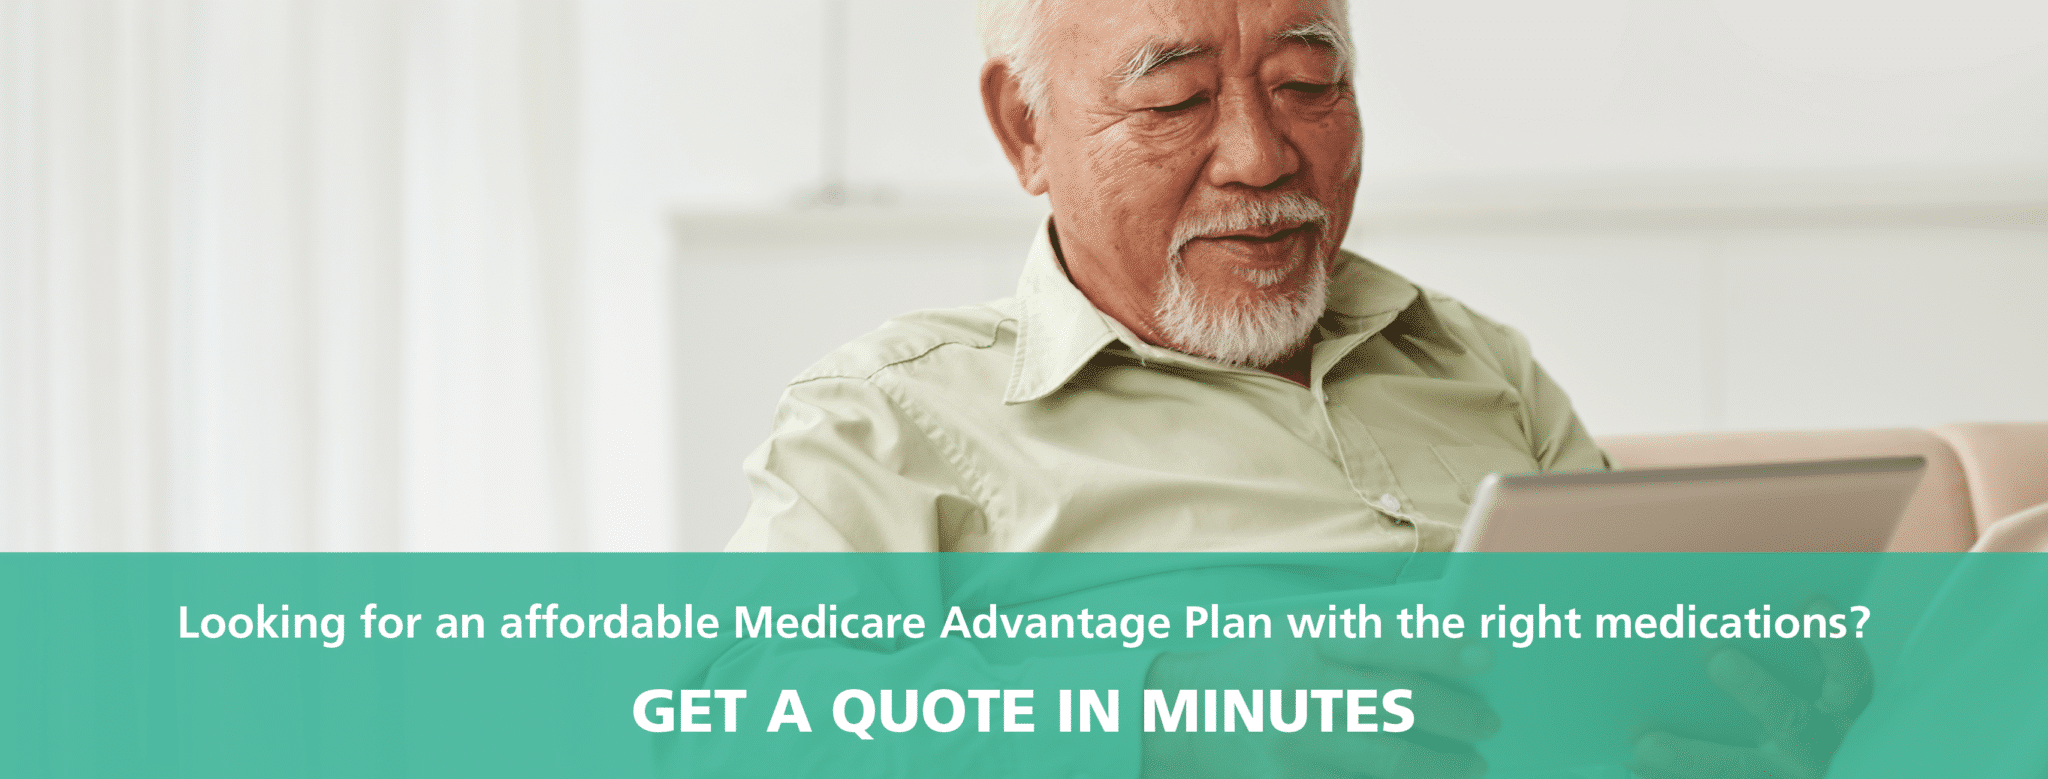 Man using online tool to get medicare quote